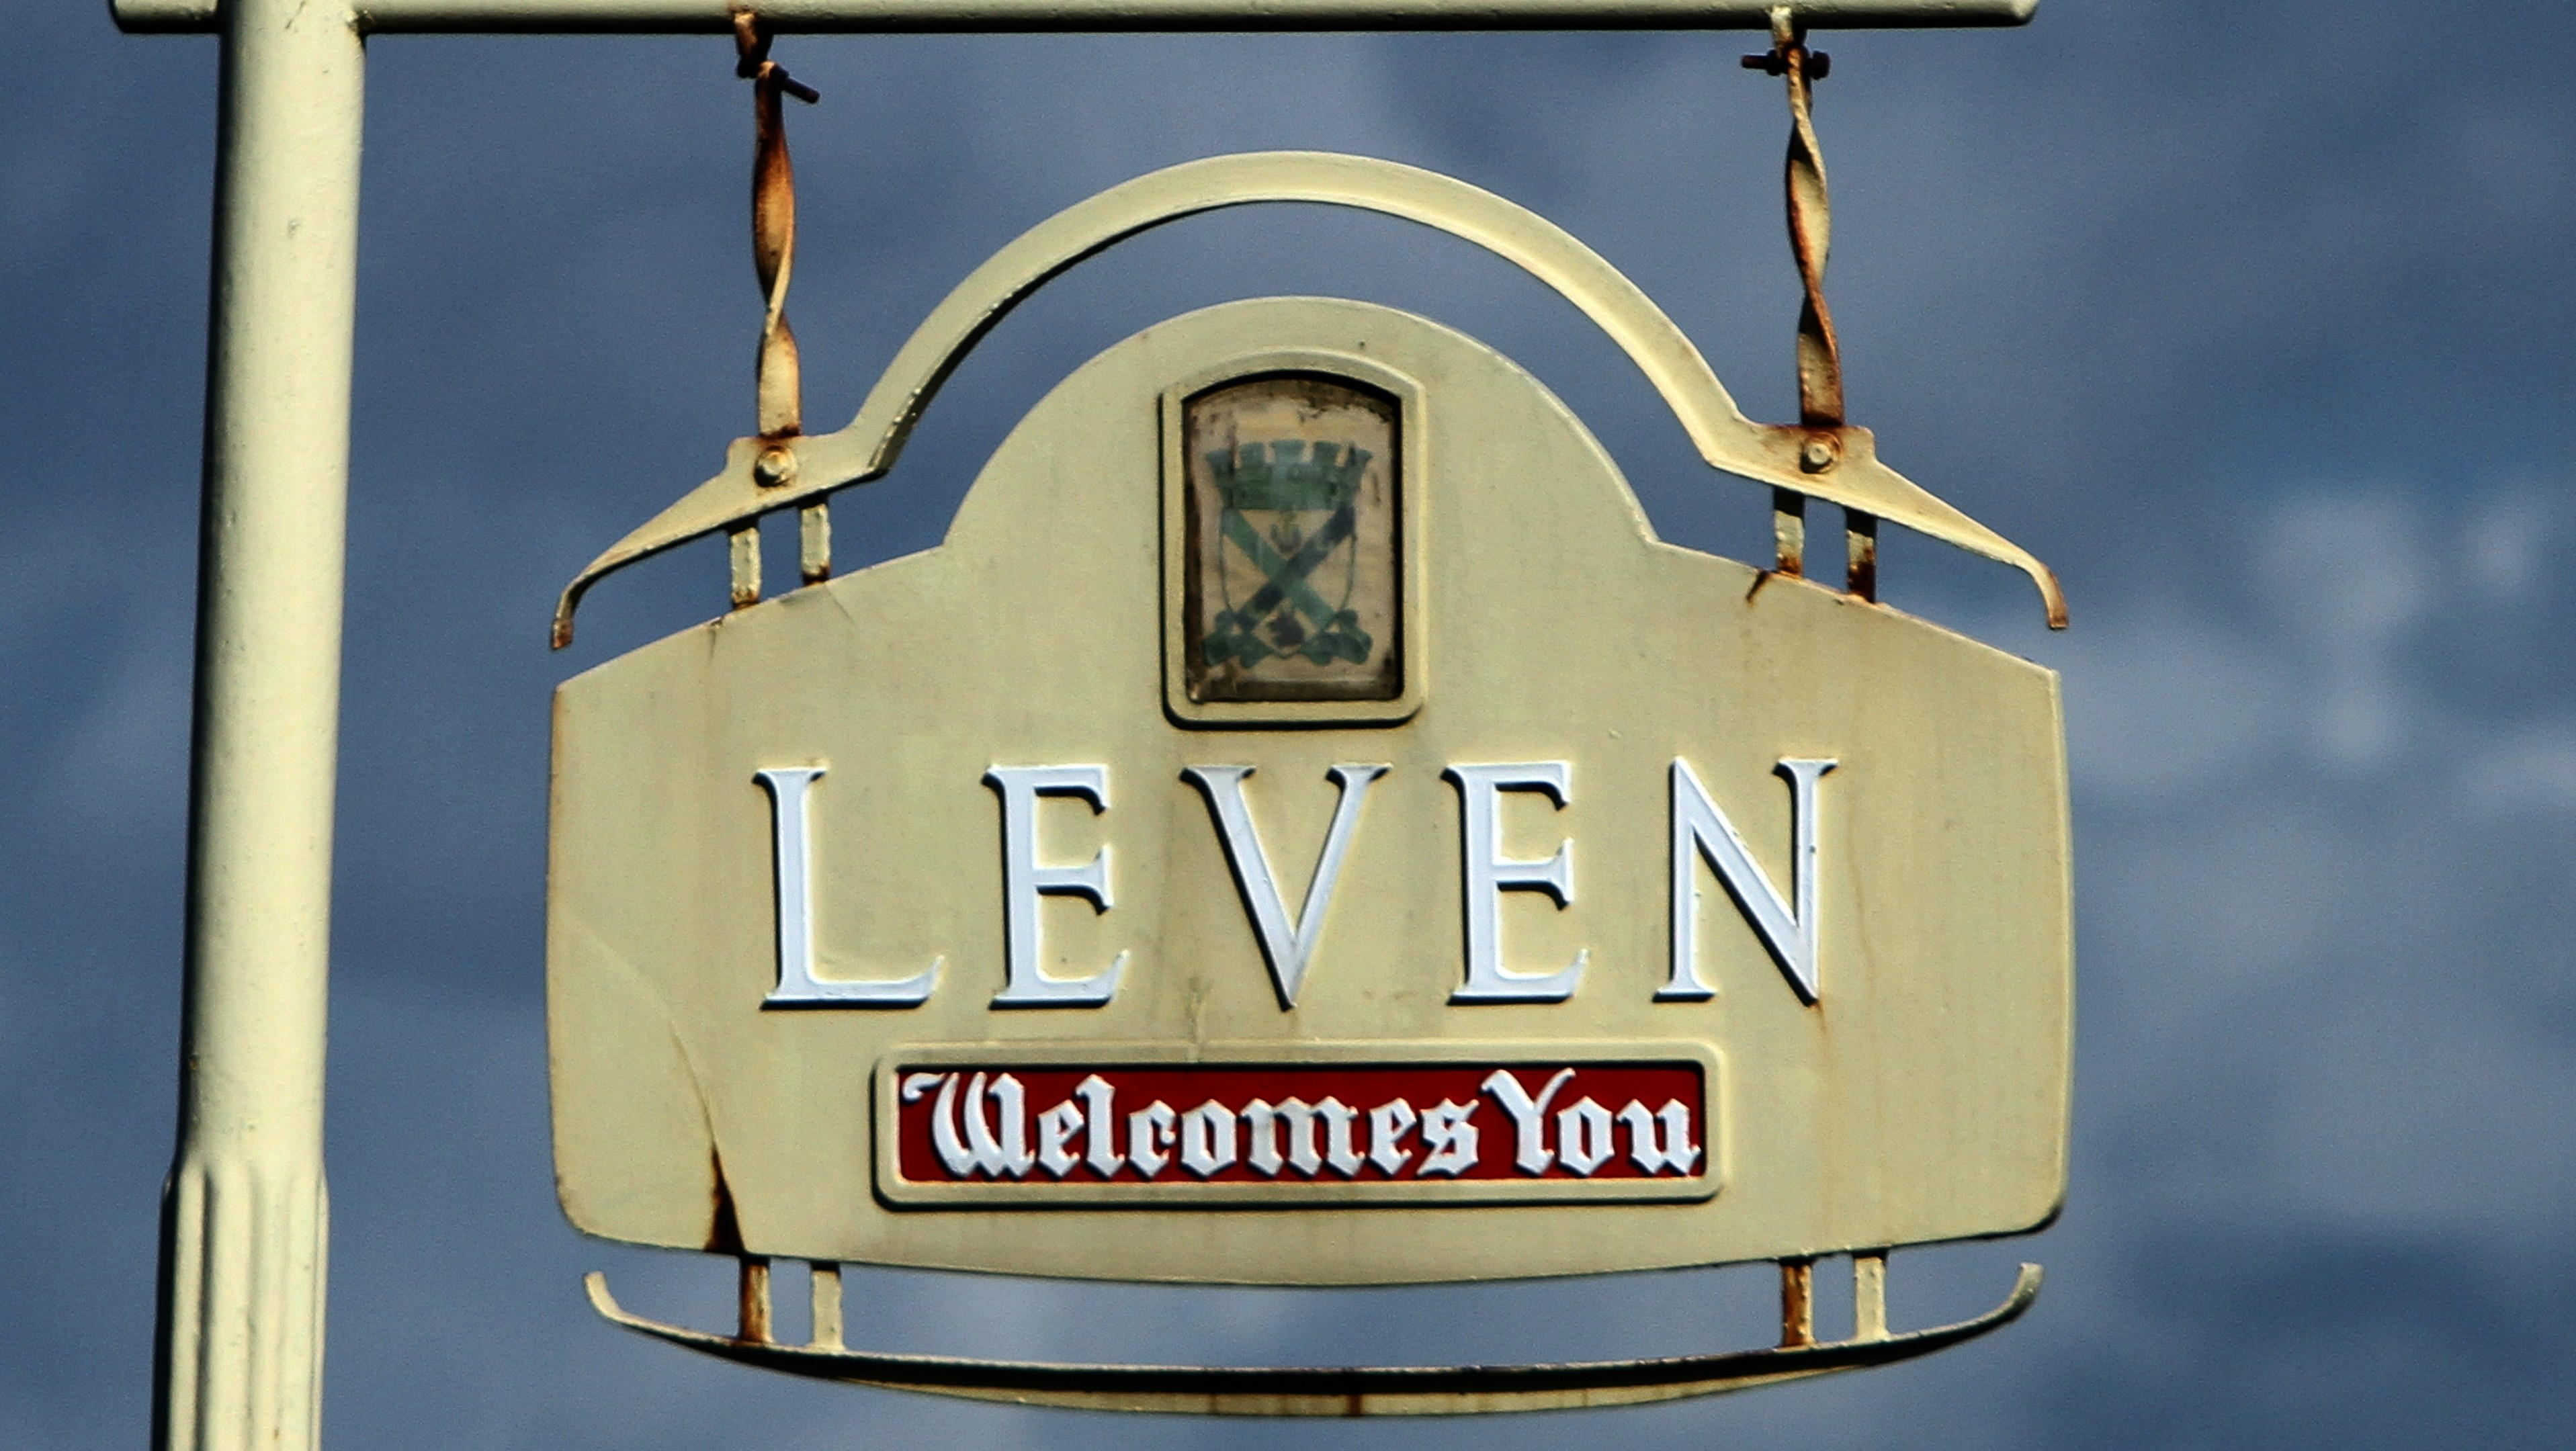 Kris Miller, Courier, Picture today shows general view of the Leven sign